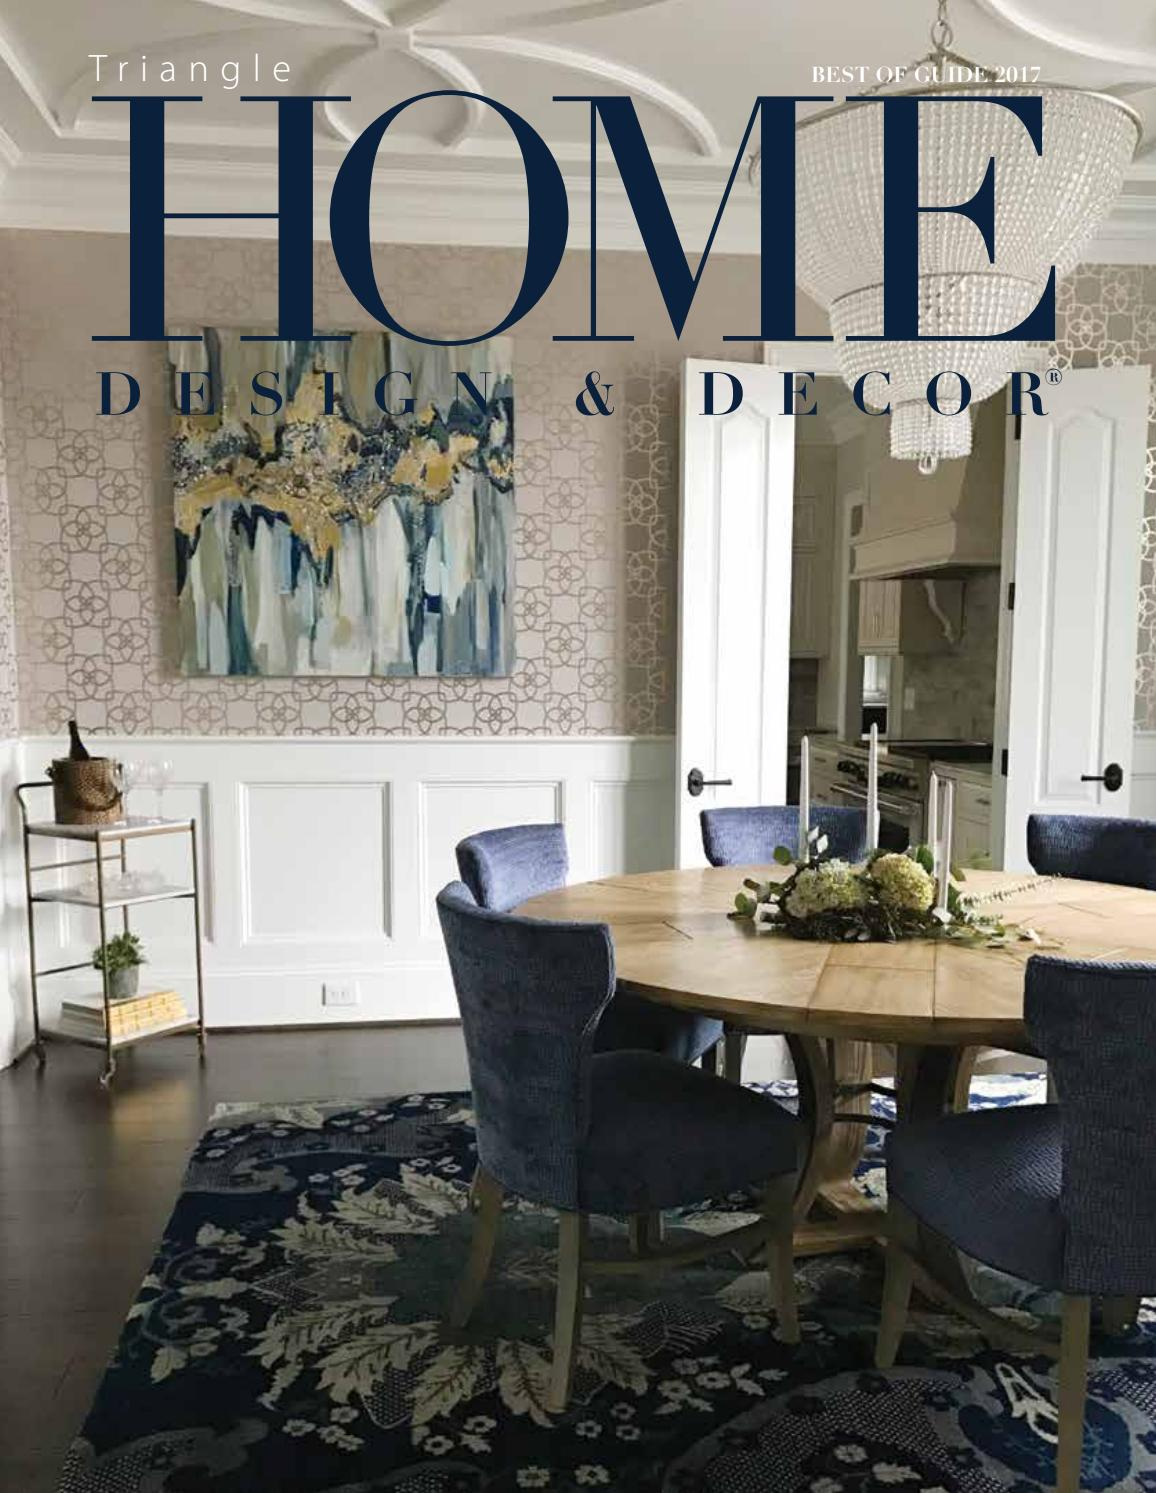 excellent living room ceiling design.  Triangle Best of Guide 2017 by Home Design Decor Magazine issuu